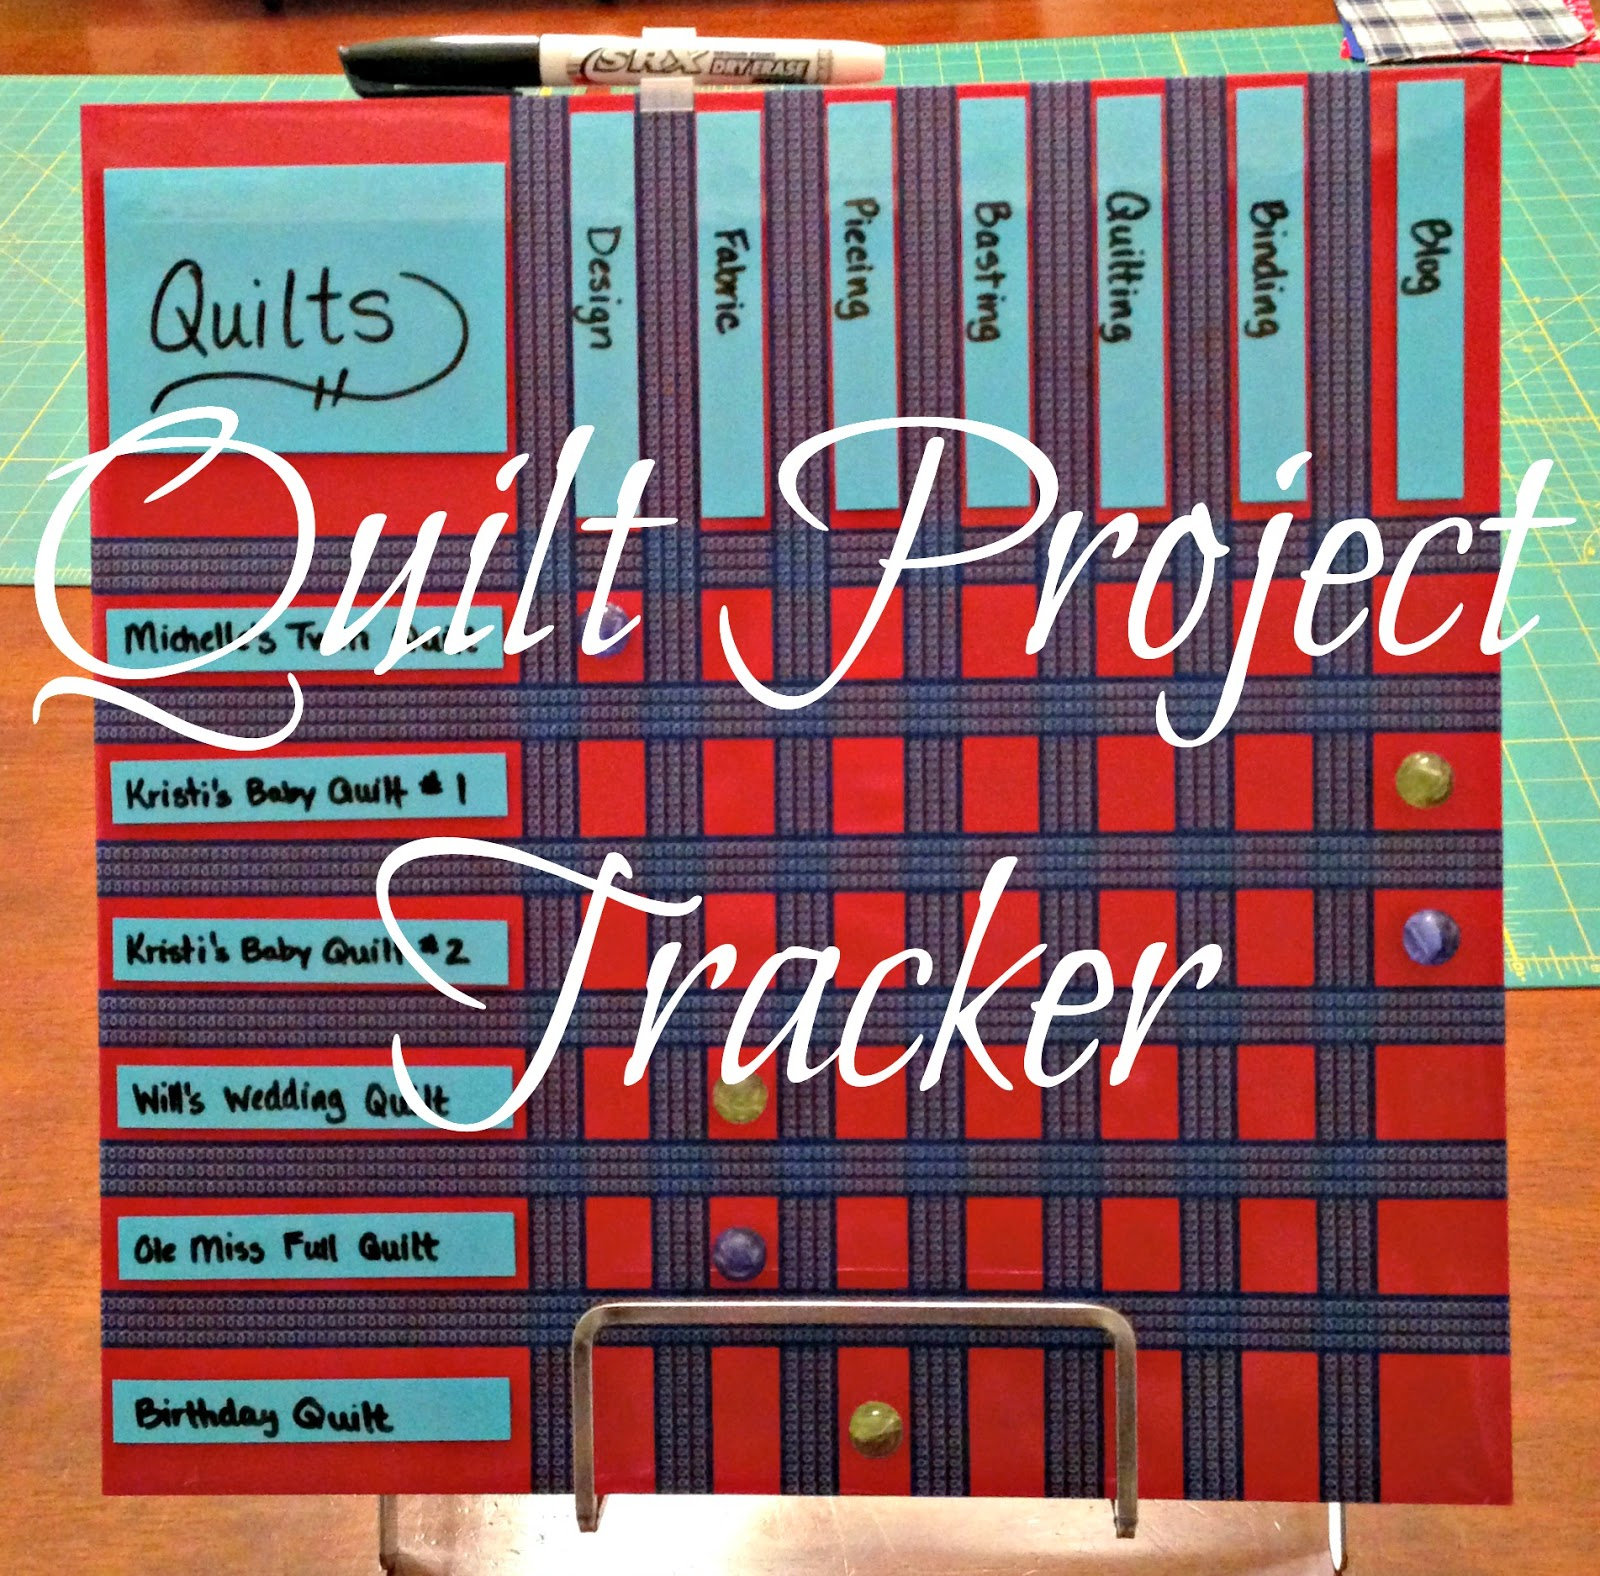 http://simplypieced.blogspot.com/2014/03/quilt-project-tracker-tutorial.html